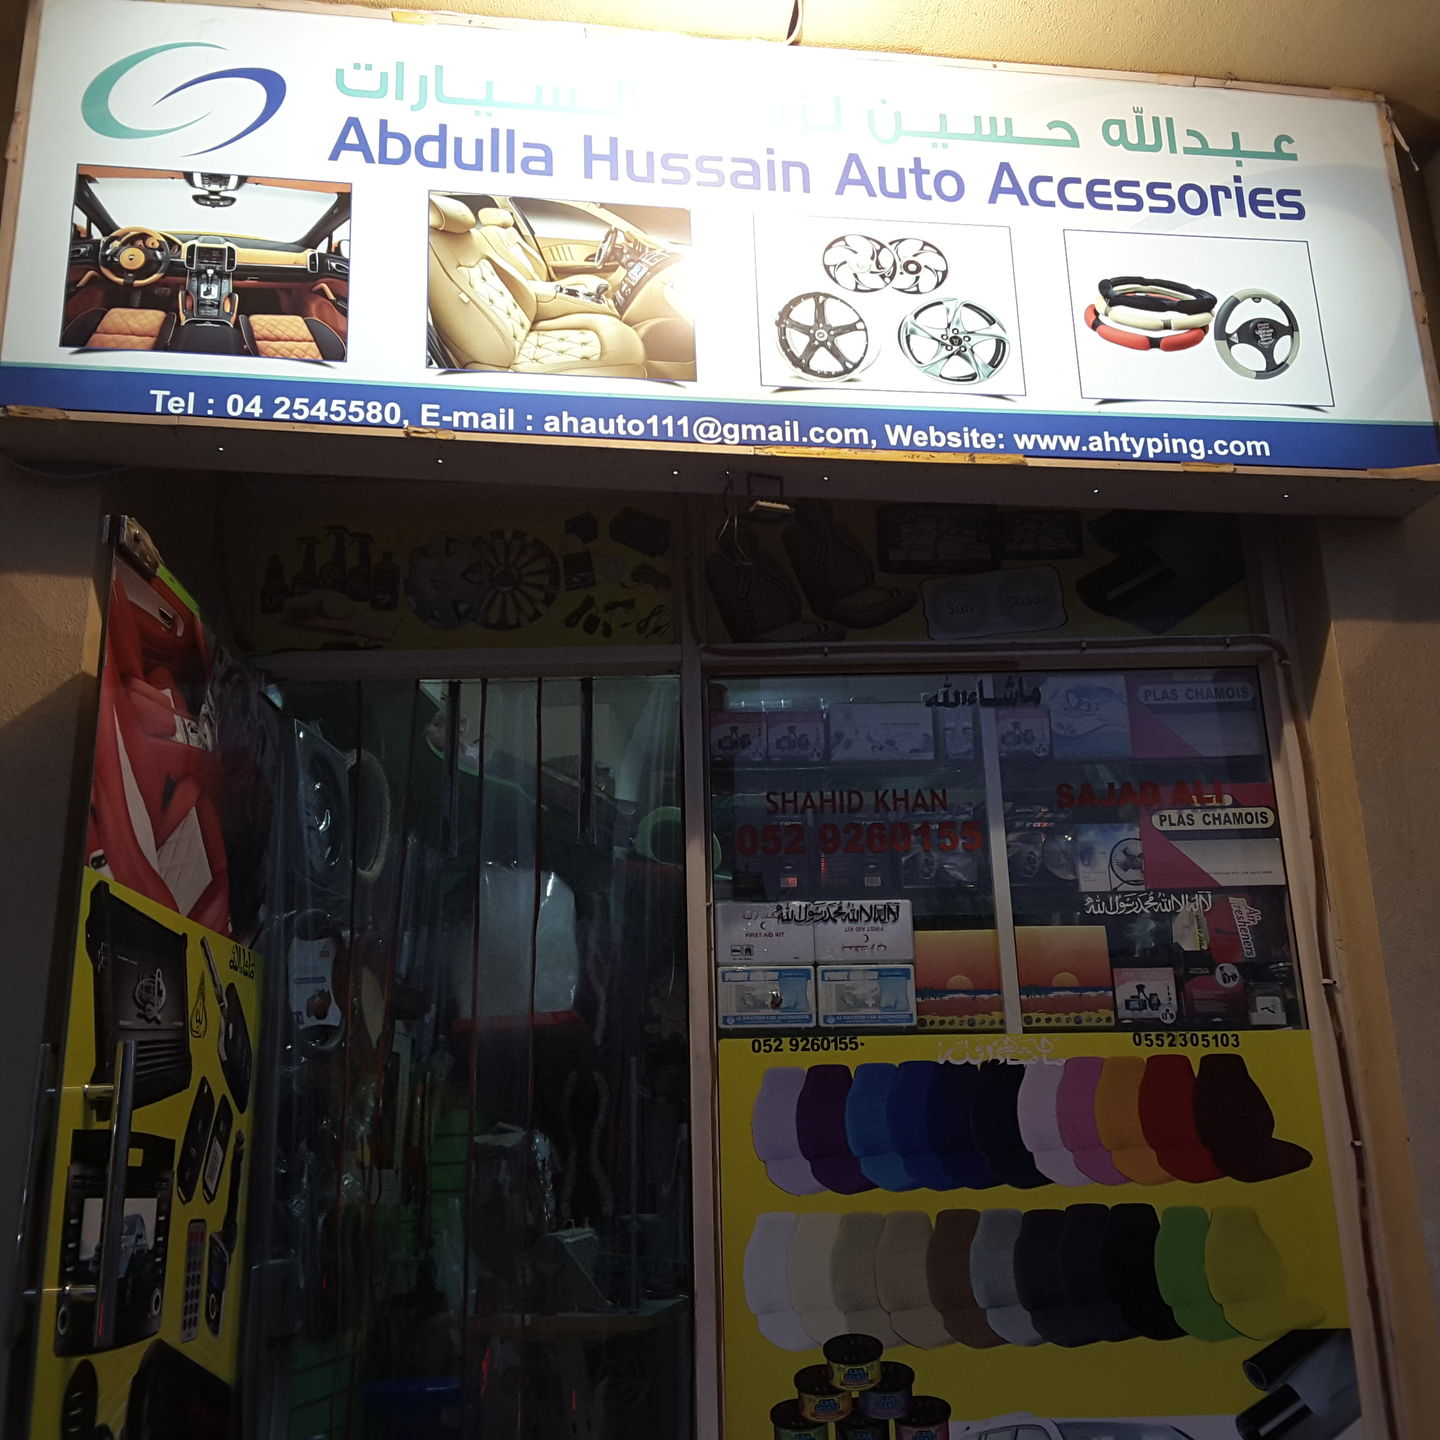 HiDubai-business-abdulla-hussain-auto-accessories-transport-vehicle-services-auto-spare-parts-accessories-hor-al-anz-dubai-2